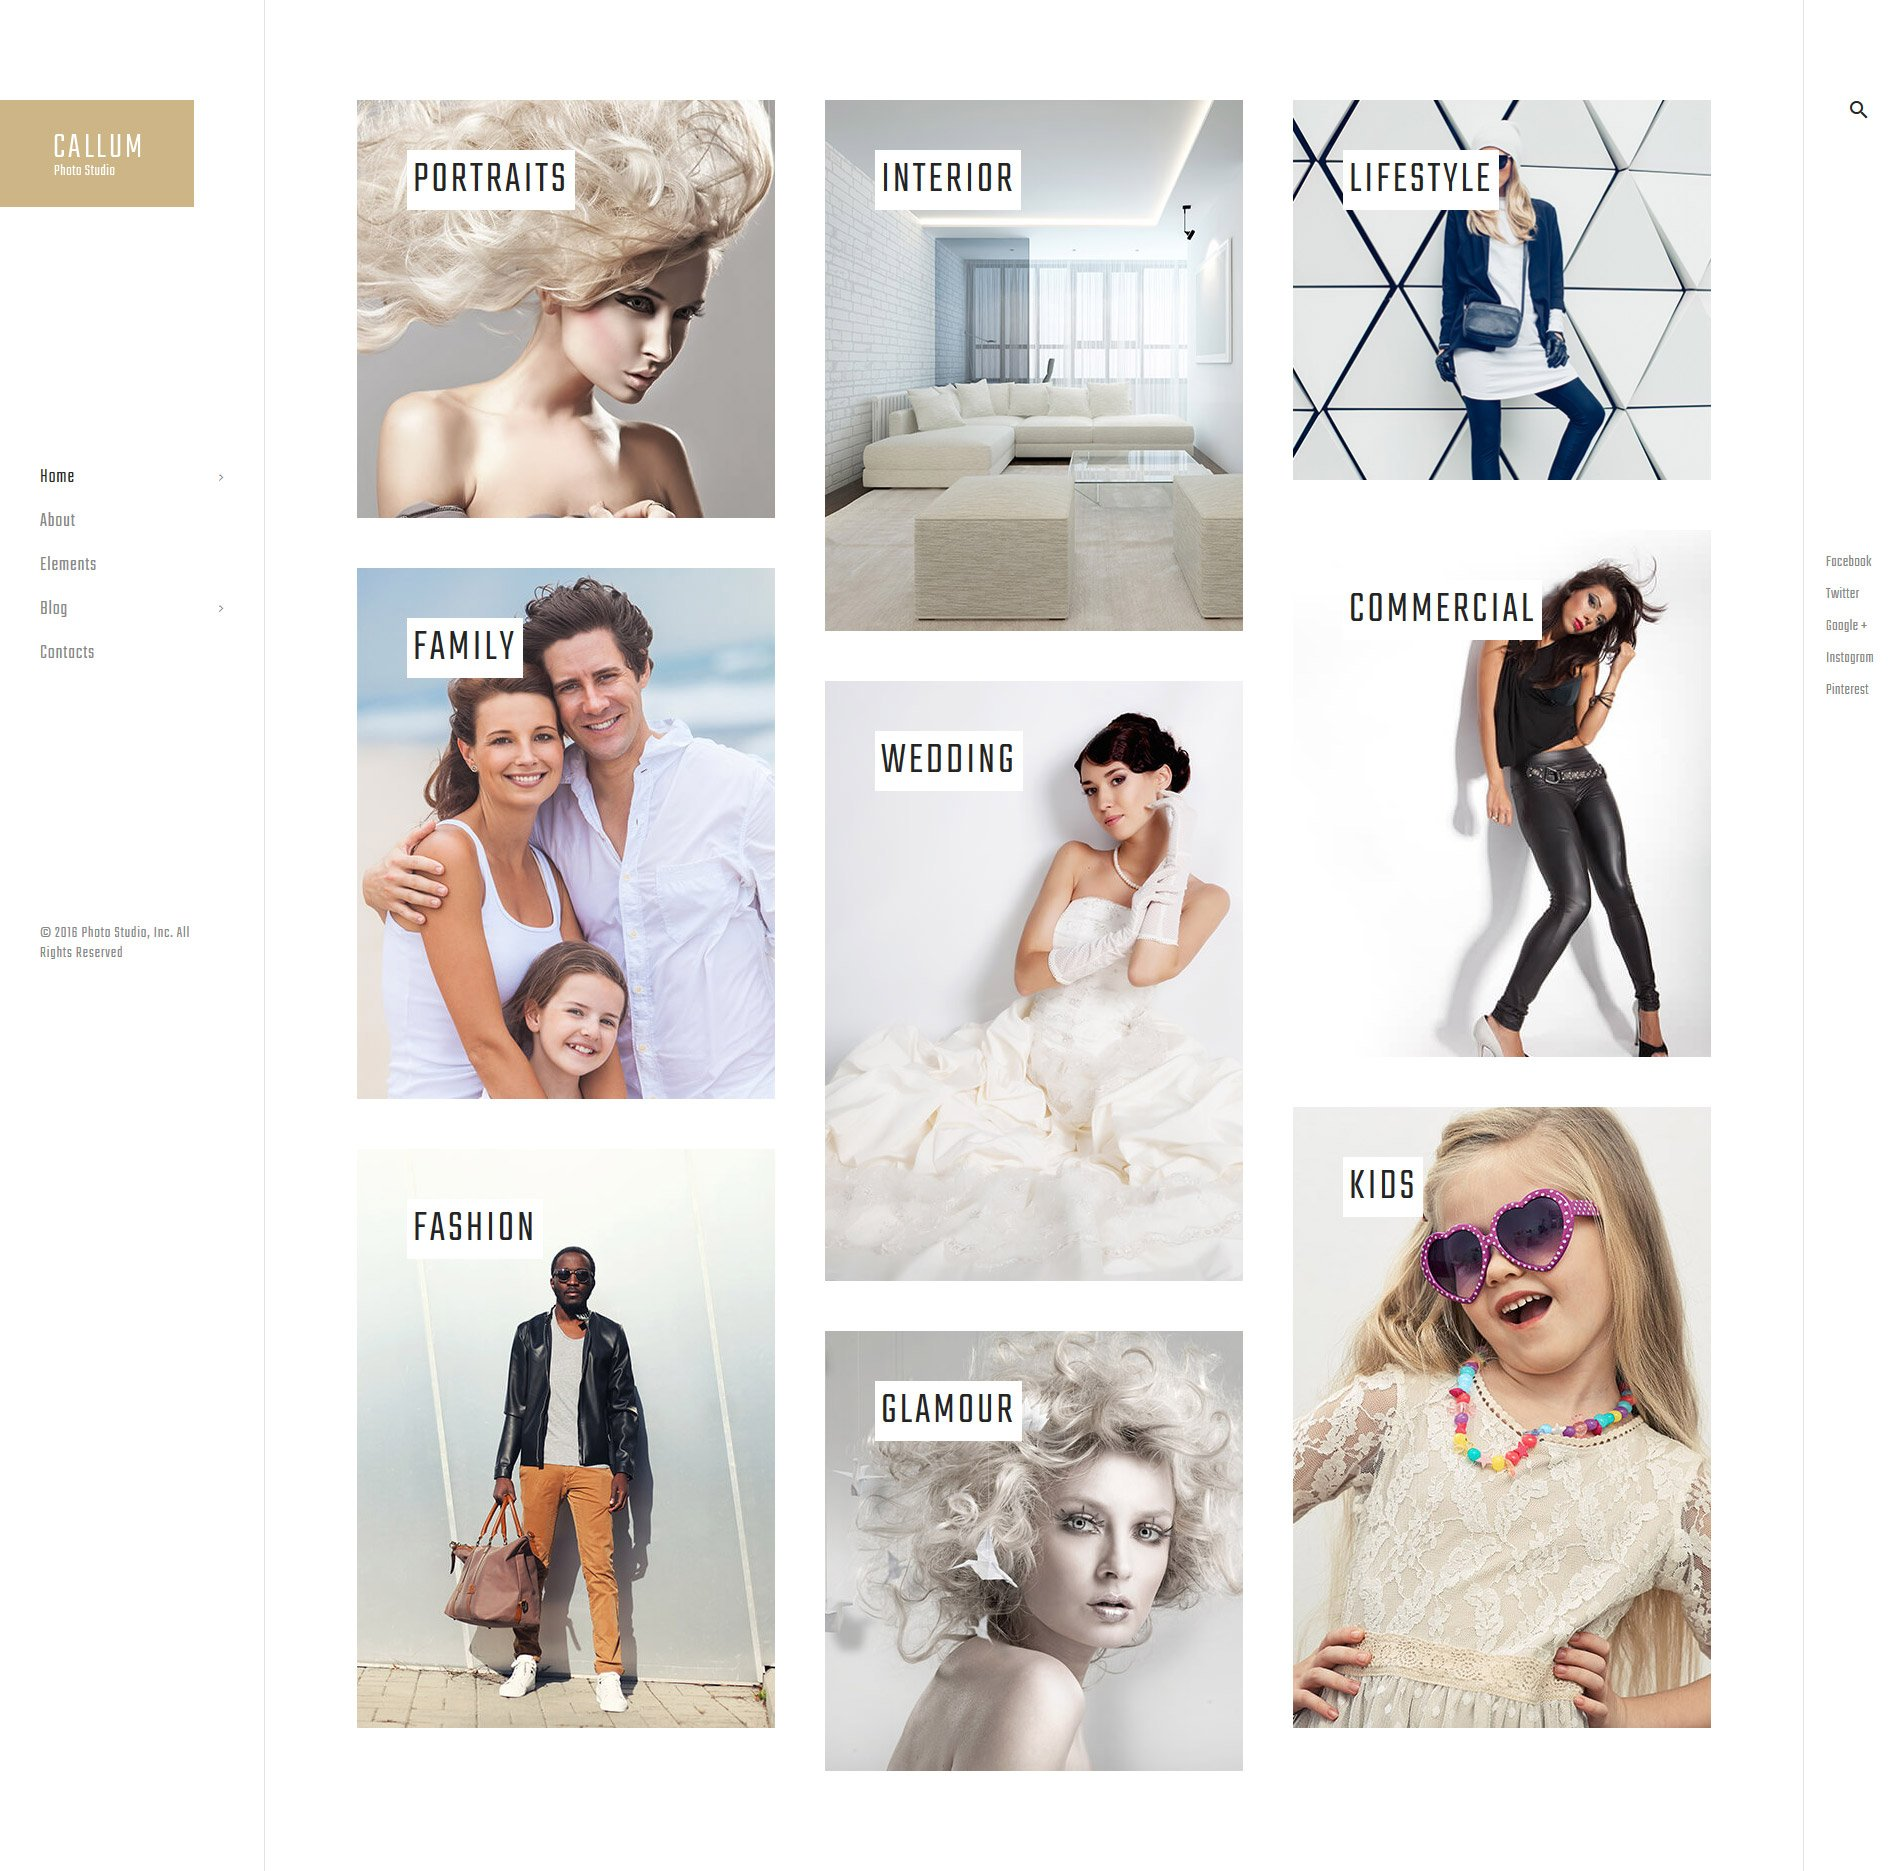 Callum - wedding photo gallery WordPress Theme - screenshot